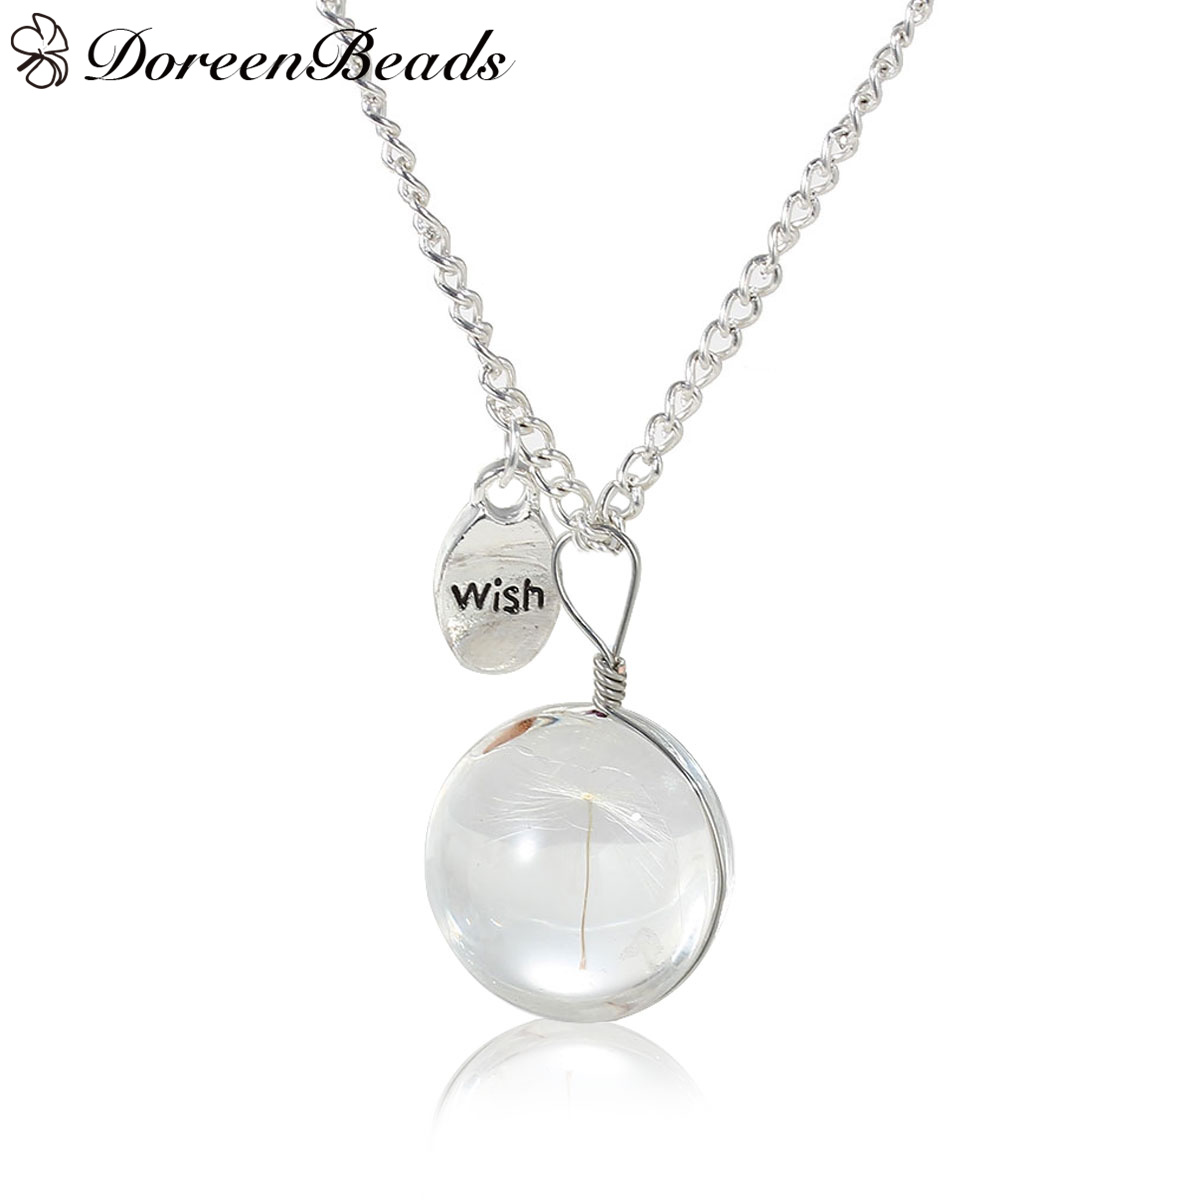 "DoreenBeads Real Dandelion Clear Glass Round Pendant Necklace Link Curb Chain silver color Oval Message""Wish"" 80.5cm,1 PC"